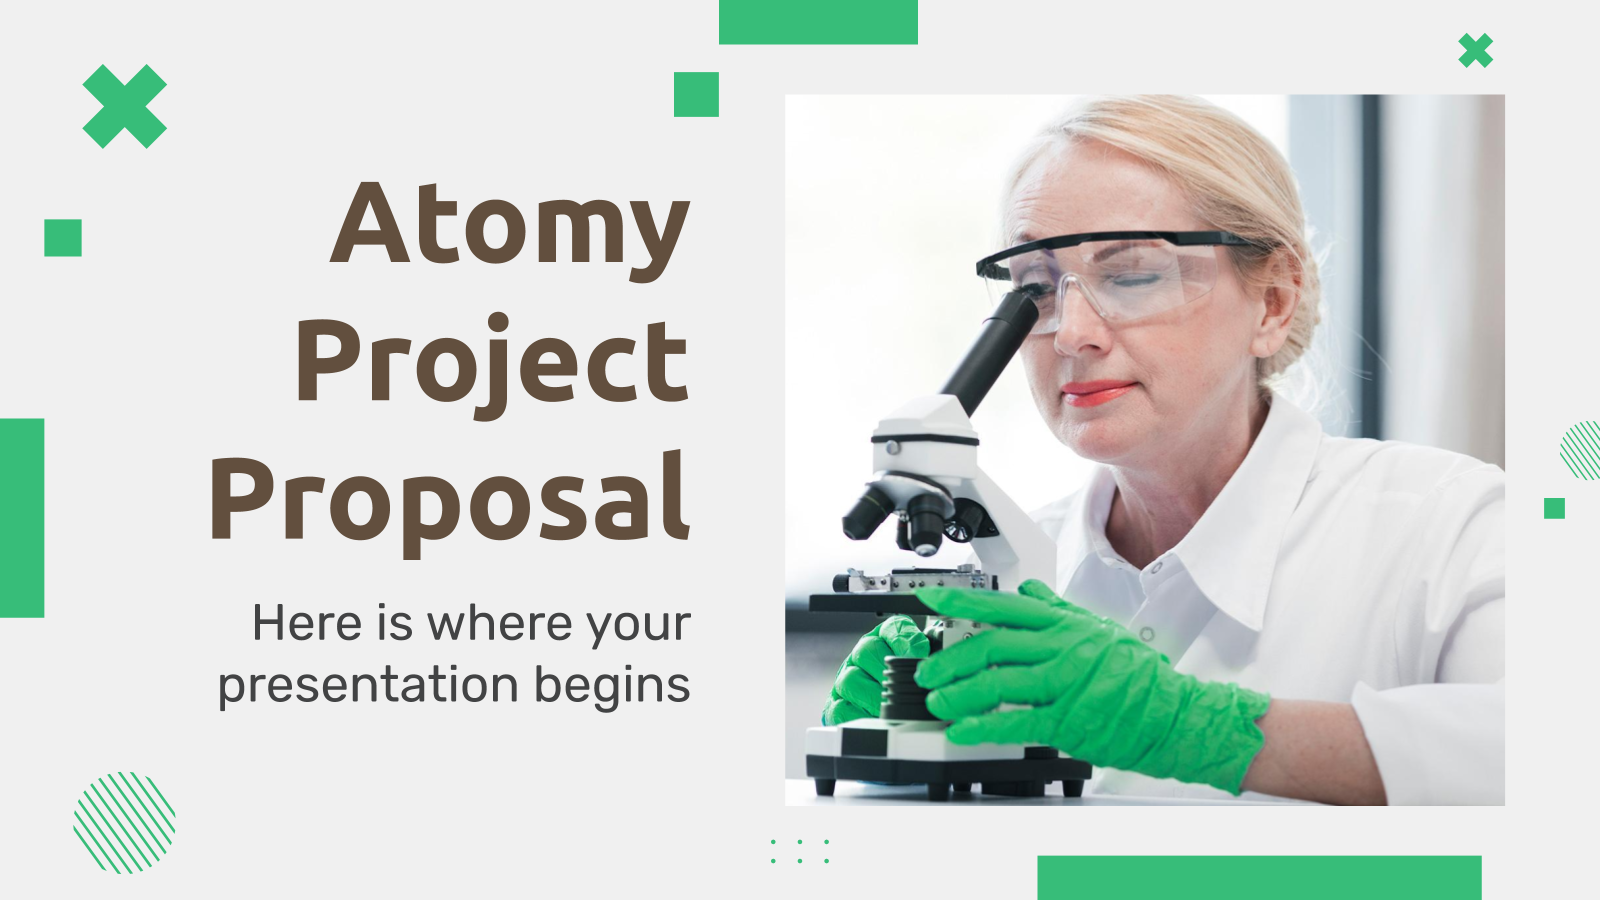 Atomy Project Proposal presentation template